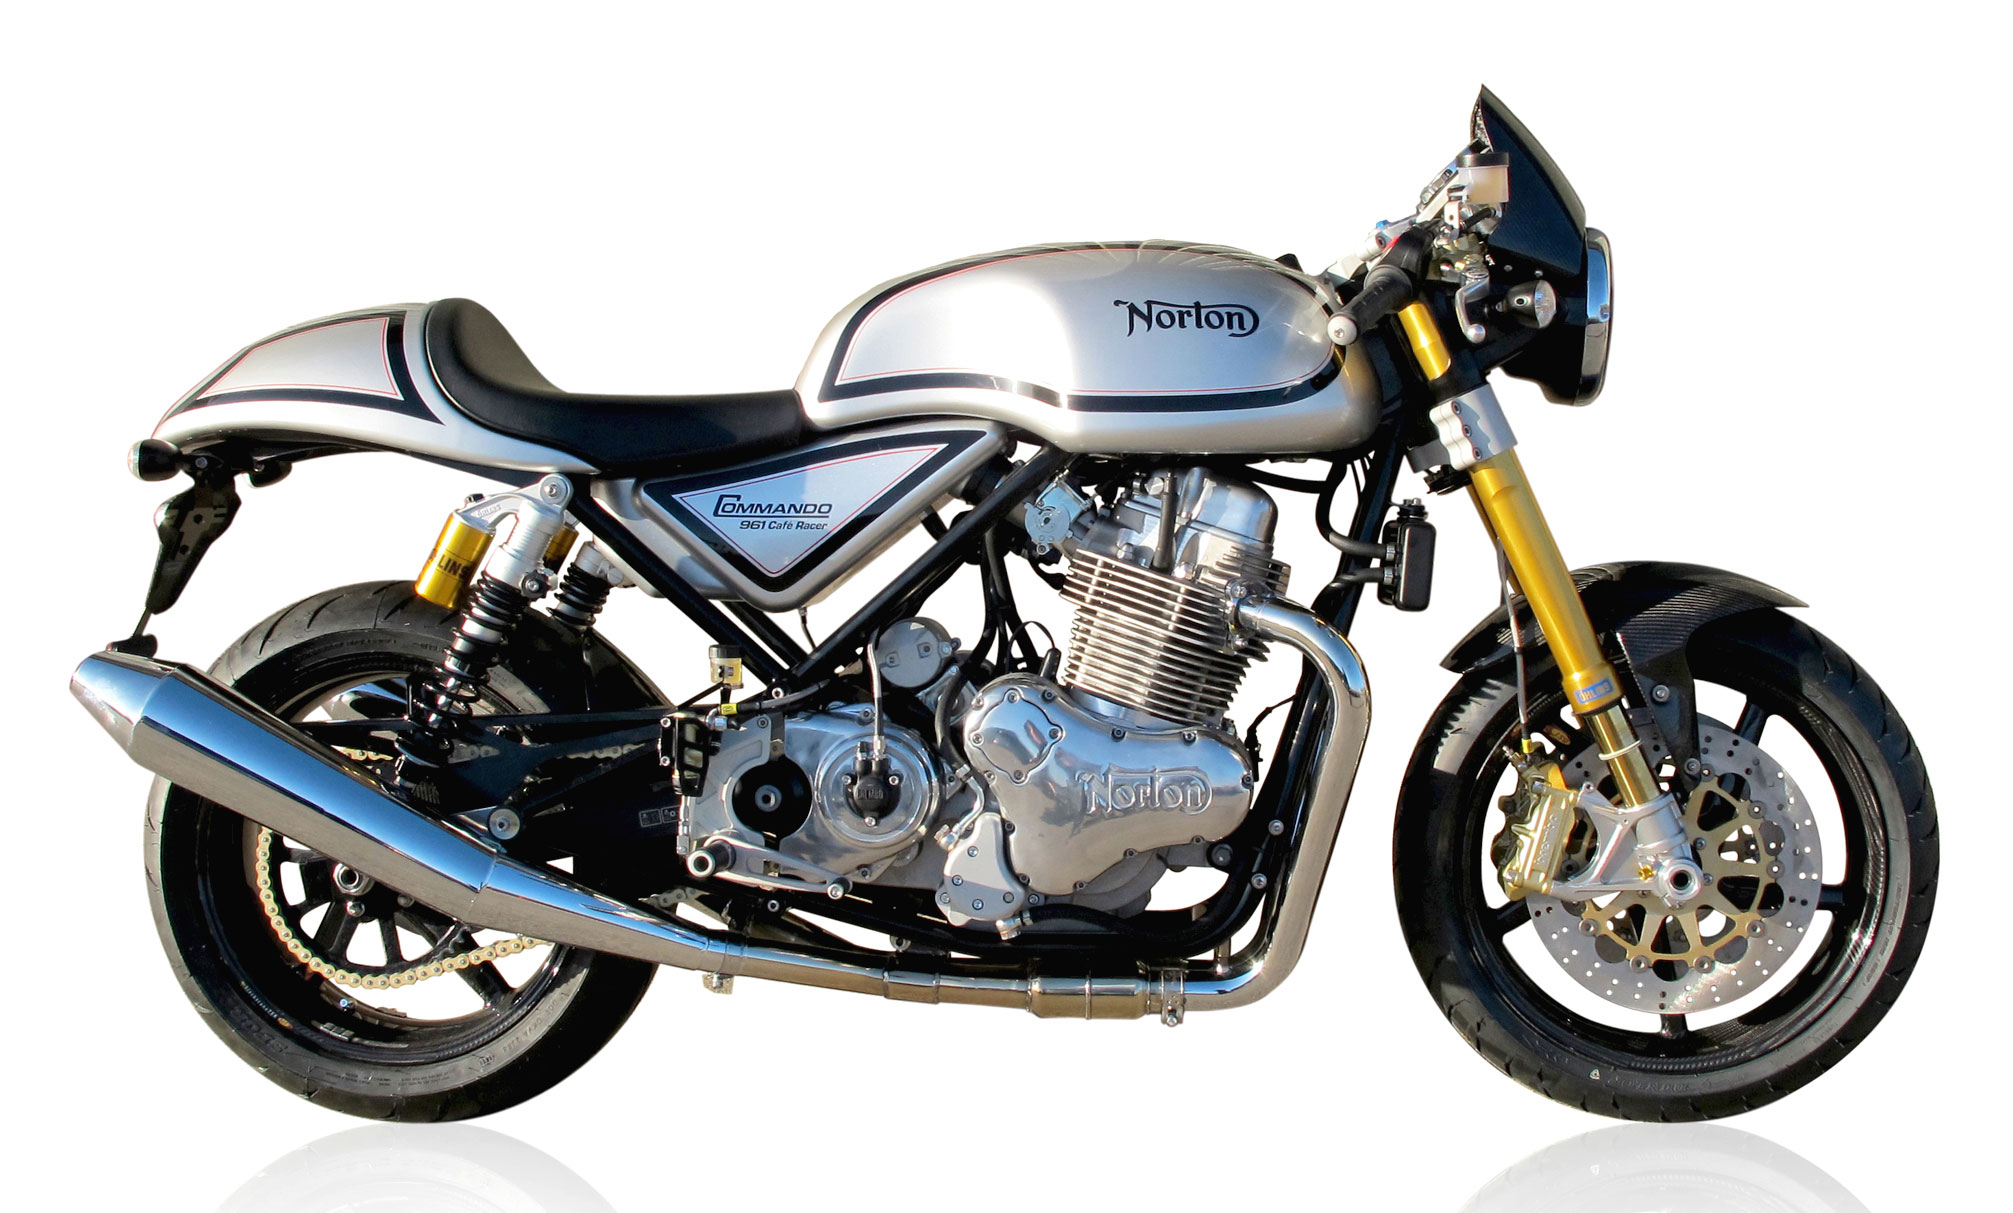 Norton Commando 961 Sport images #117643